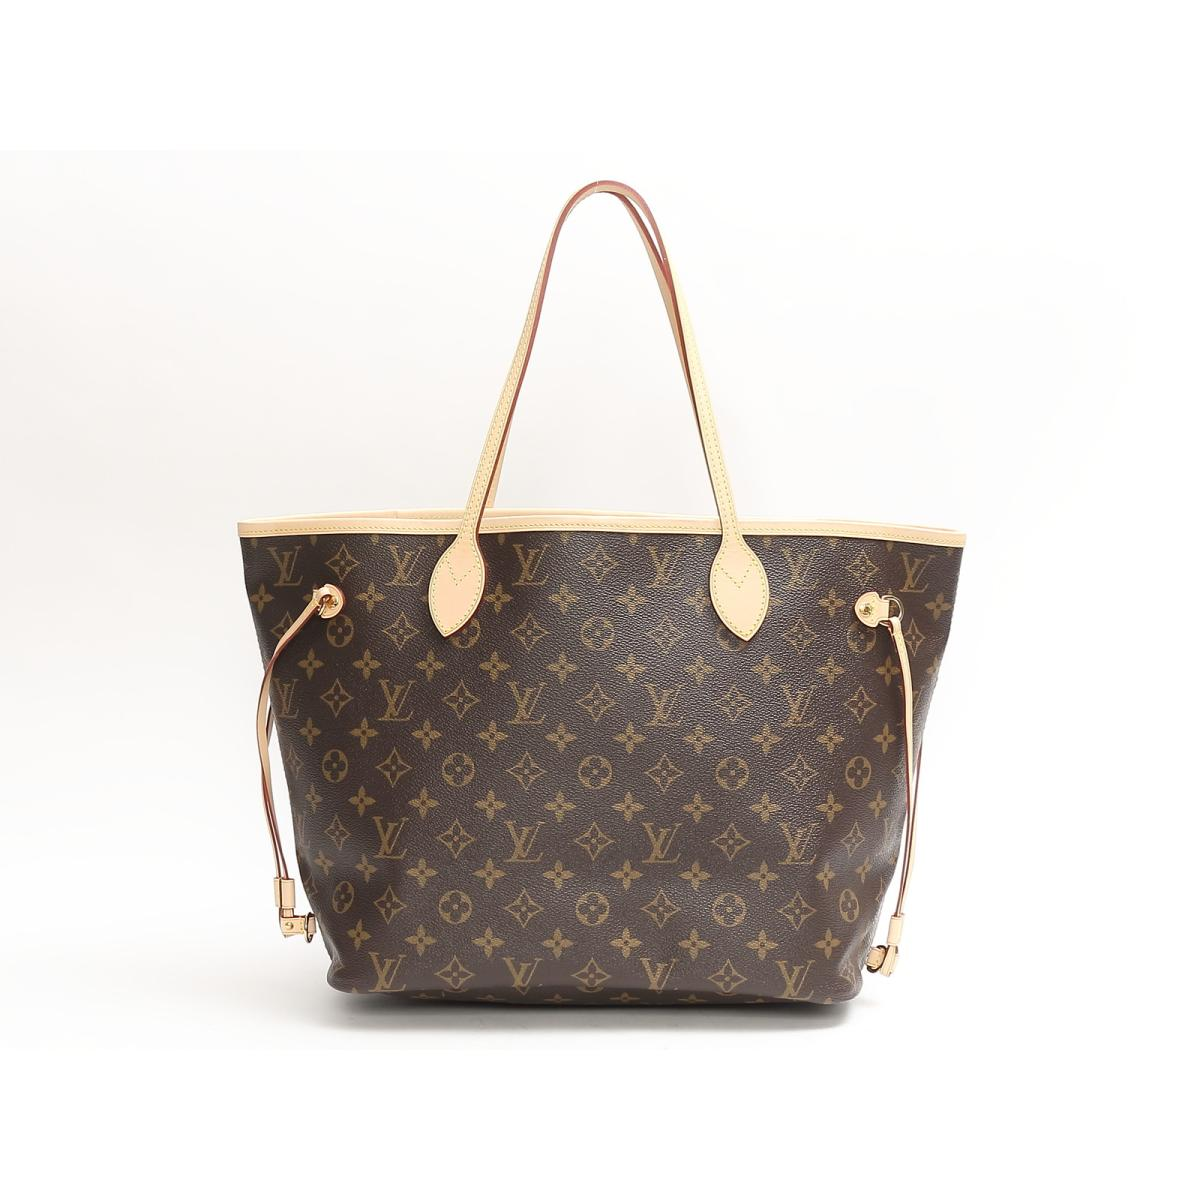 eba5bb36edcb BRANDOFF  Authentic LOUIS VUITTON Neverfull MM Shoulder Bag M40995 ...